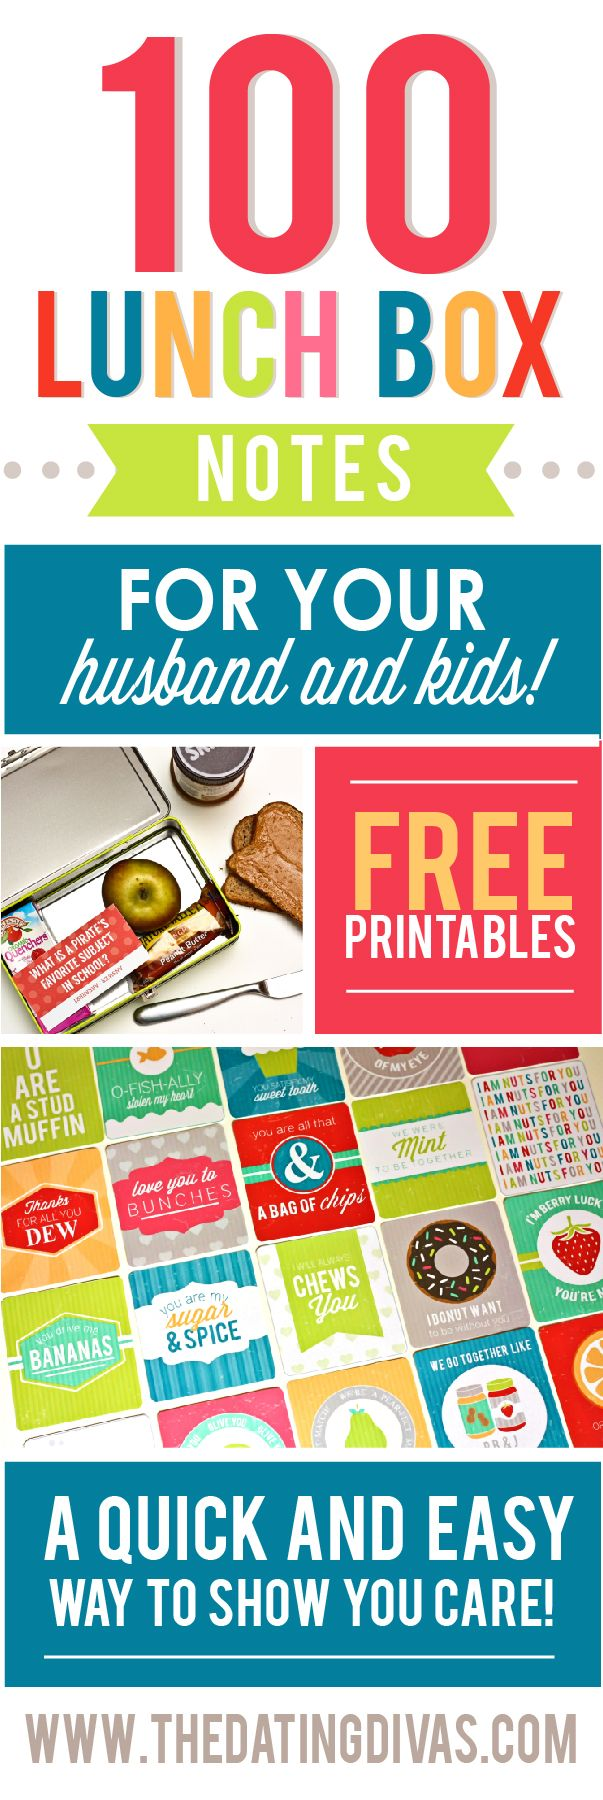 100 Lunch Box Notes for your hubby!